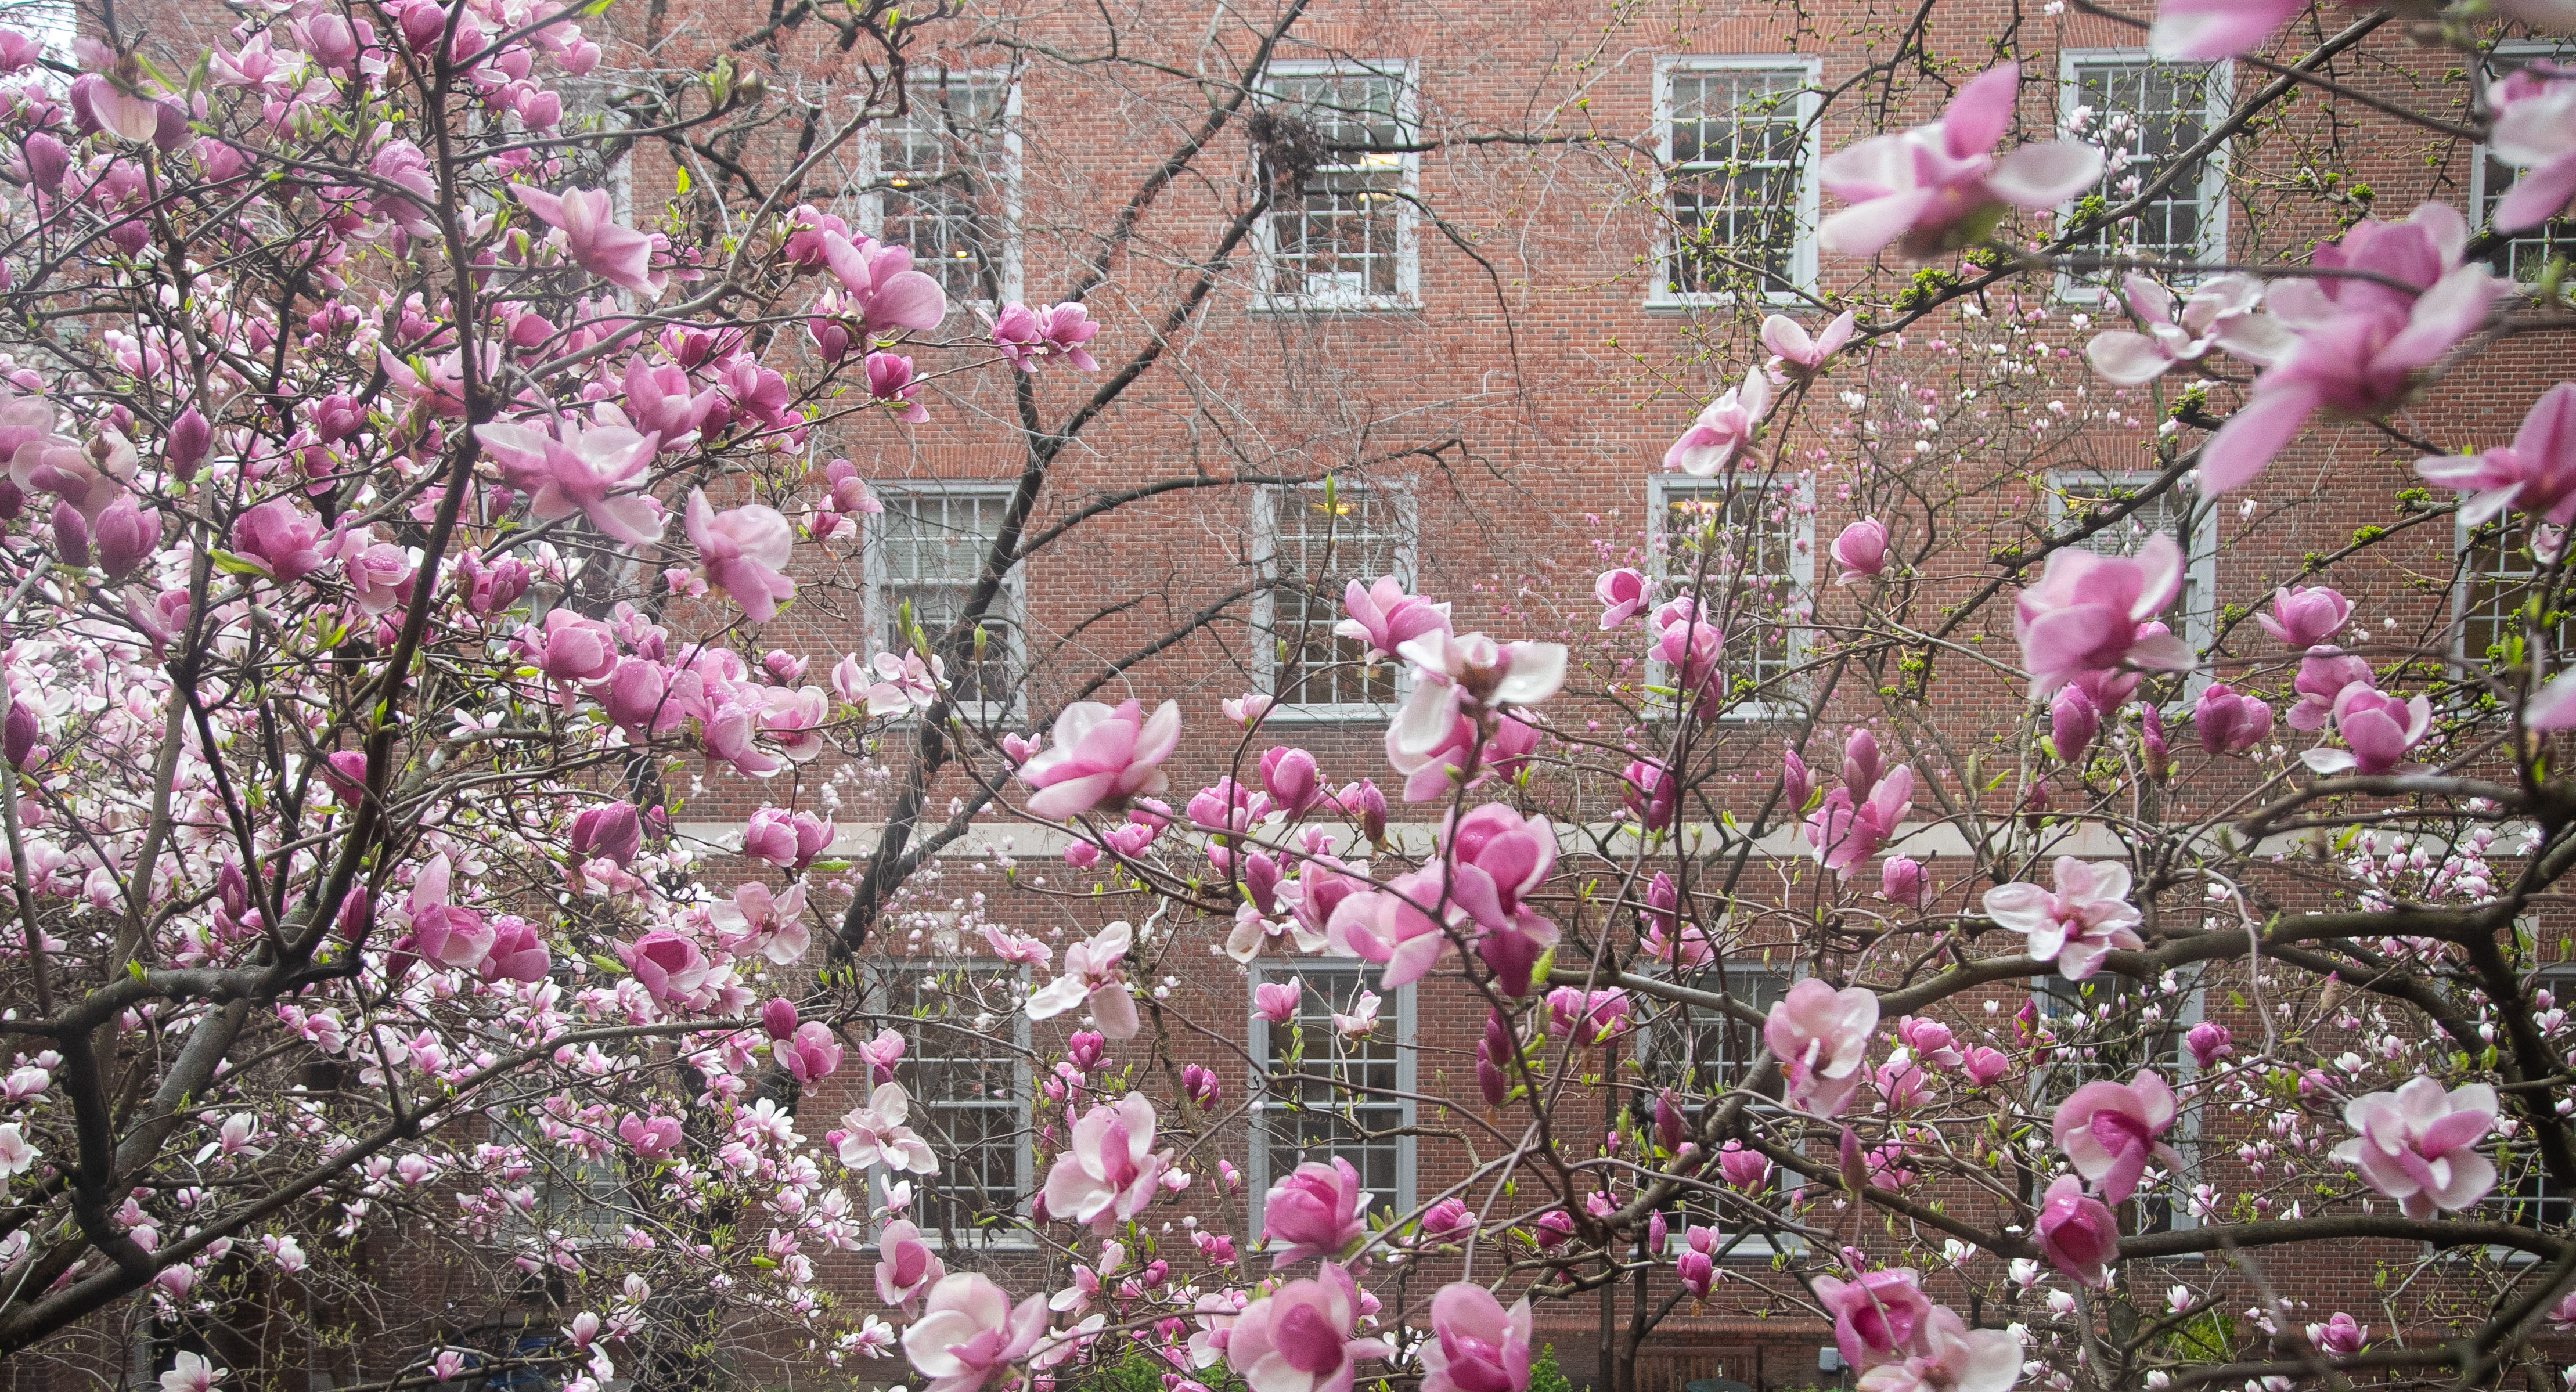 The magnolia trees in full bloom in Vanderbilt Hall Courtyard